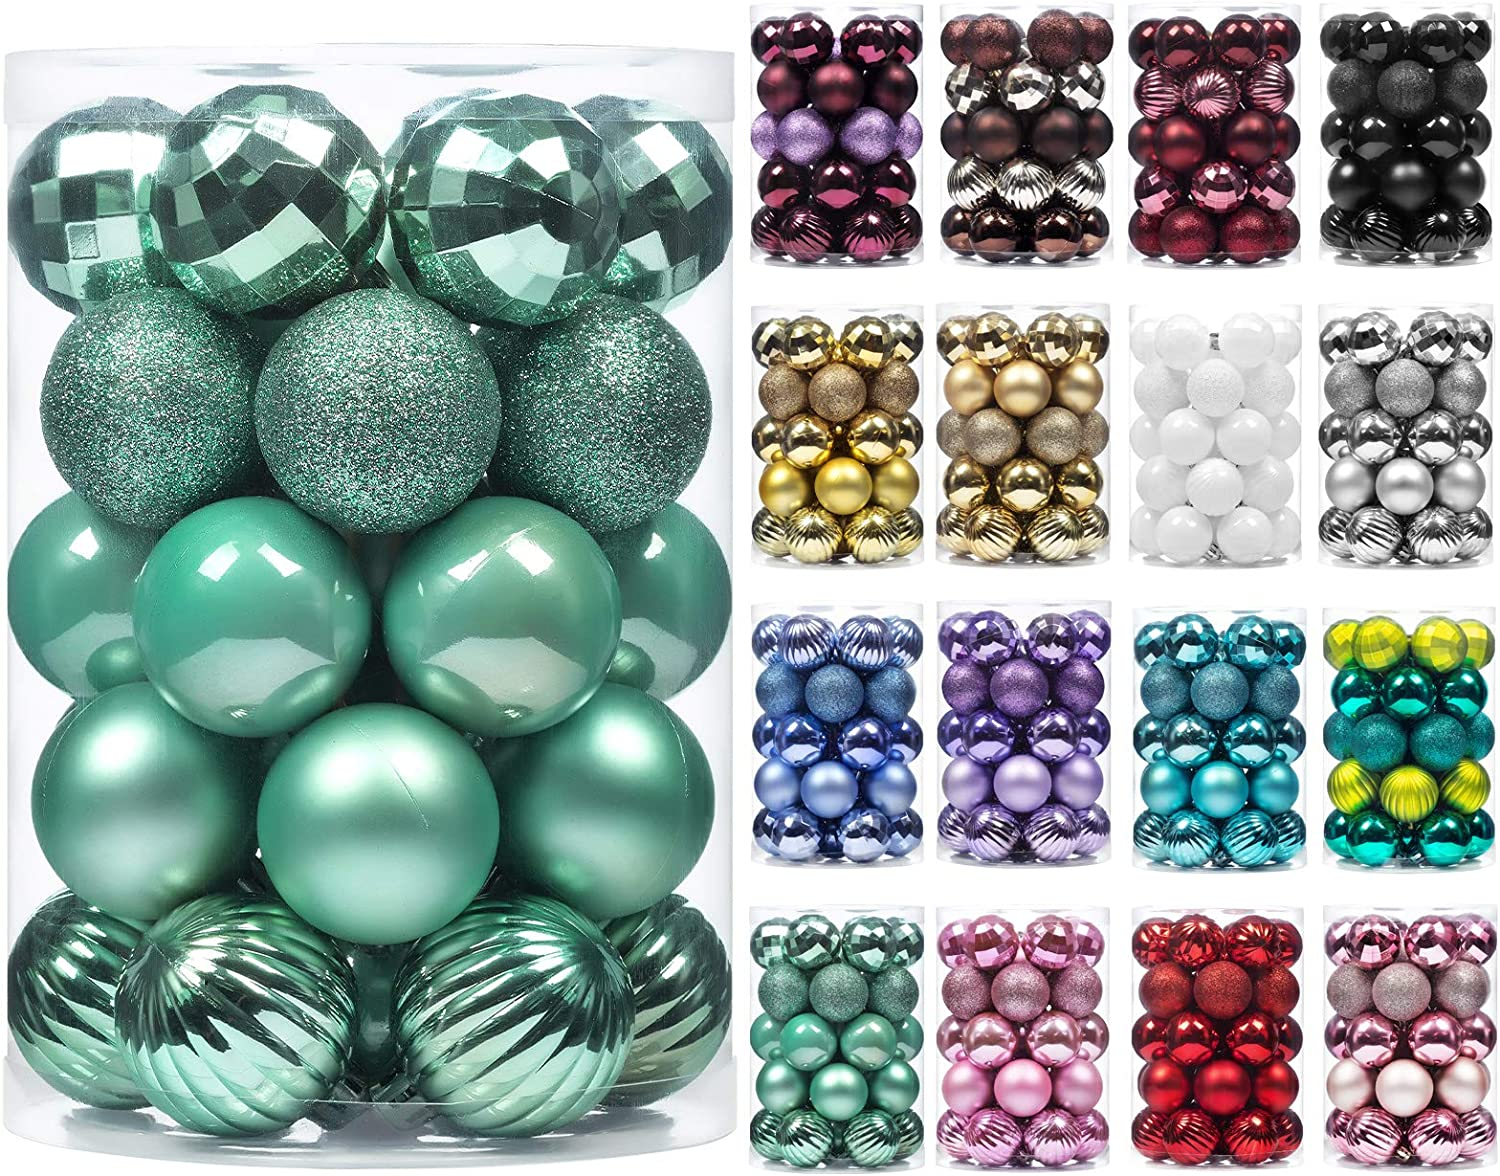 XmasExp Christmas Ball Ornaments (1.57